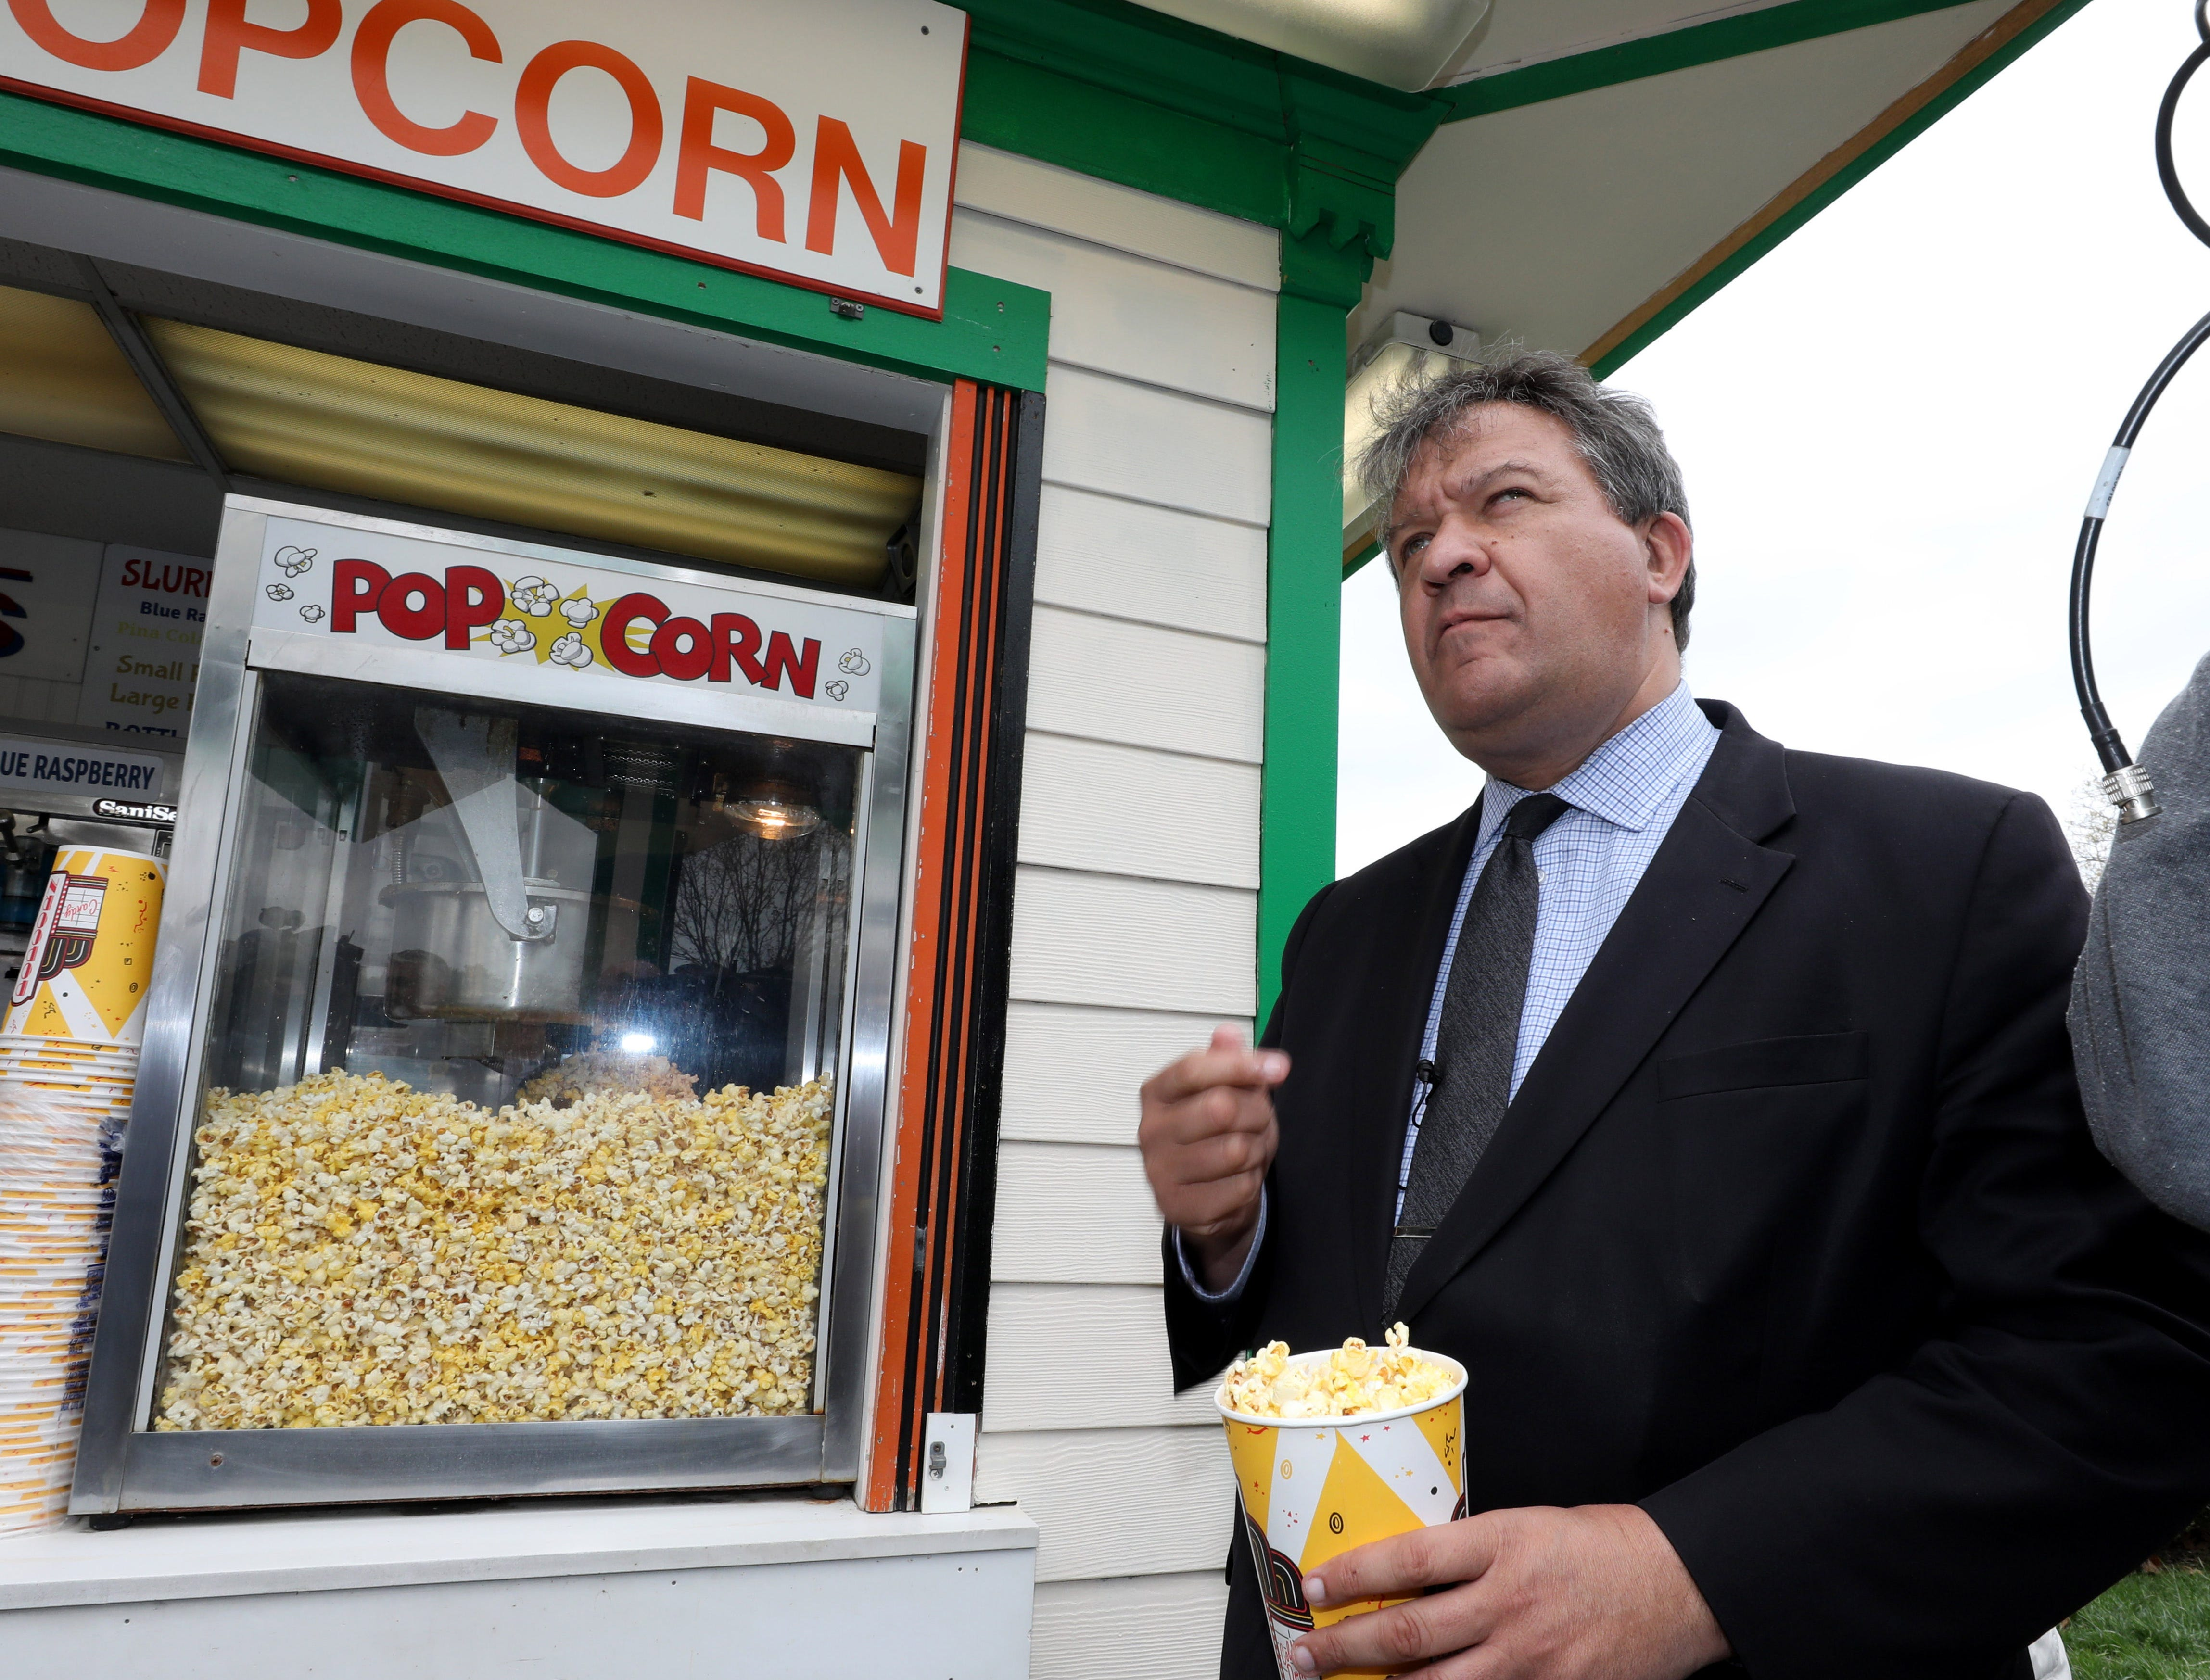 """George Latimer, the Westchester County Executive, samples the popcorn during a """"ride and food safety tour"""" for the media, at Playland in Rye, May 9, 2019."""